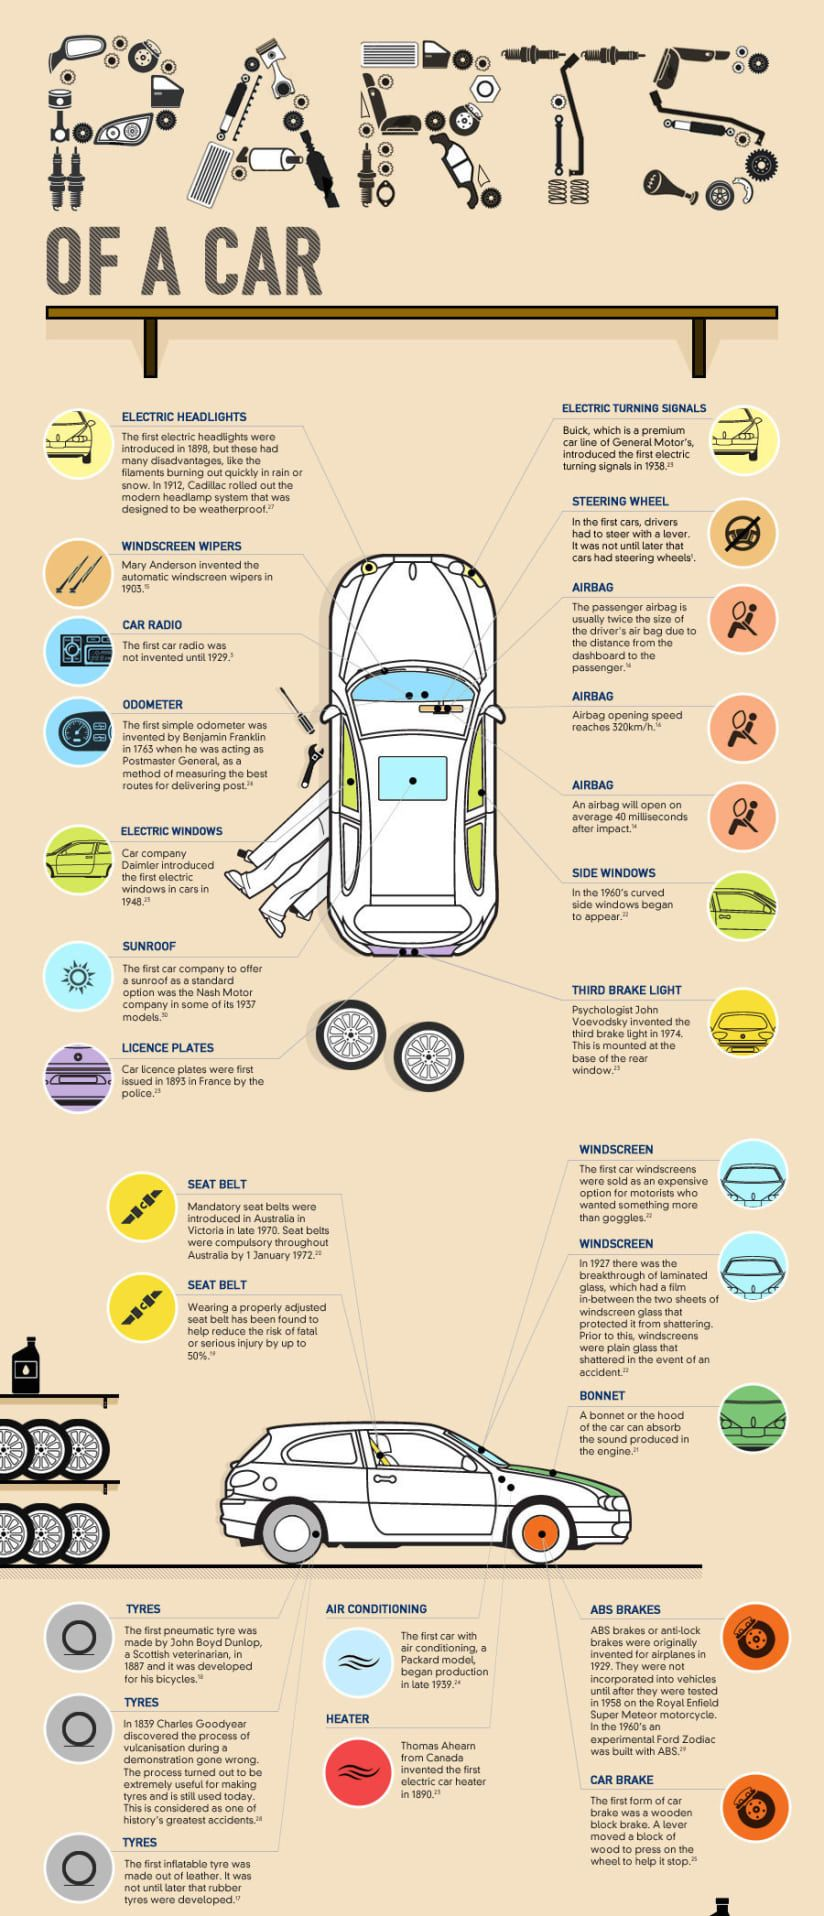 When To Check Everything Car Care Tips Car Hacks Car